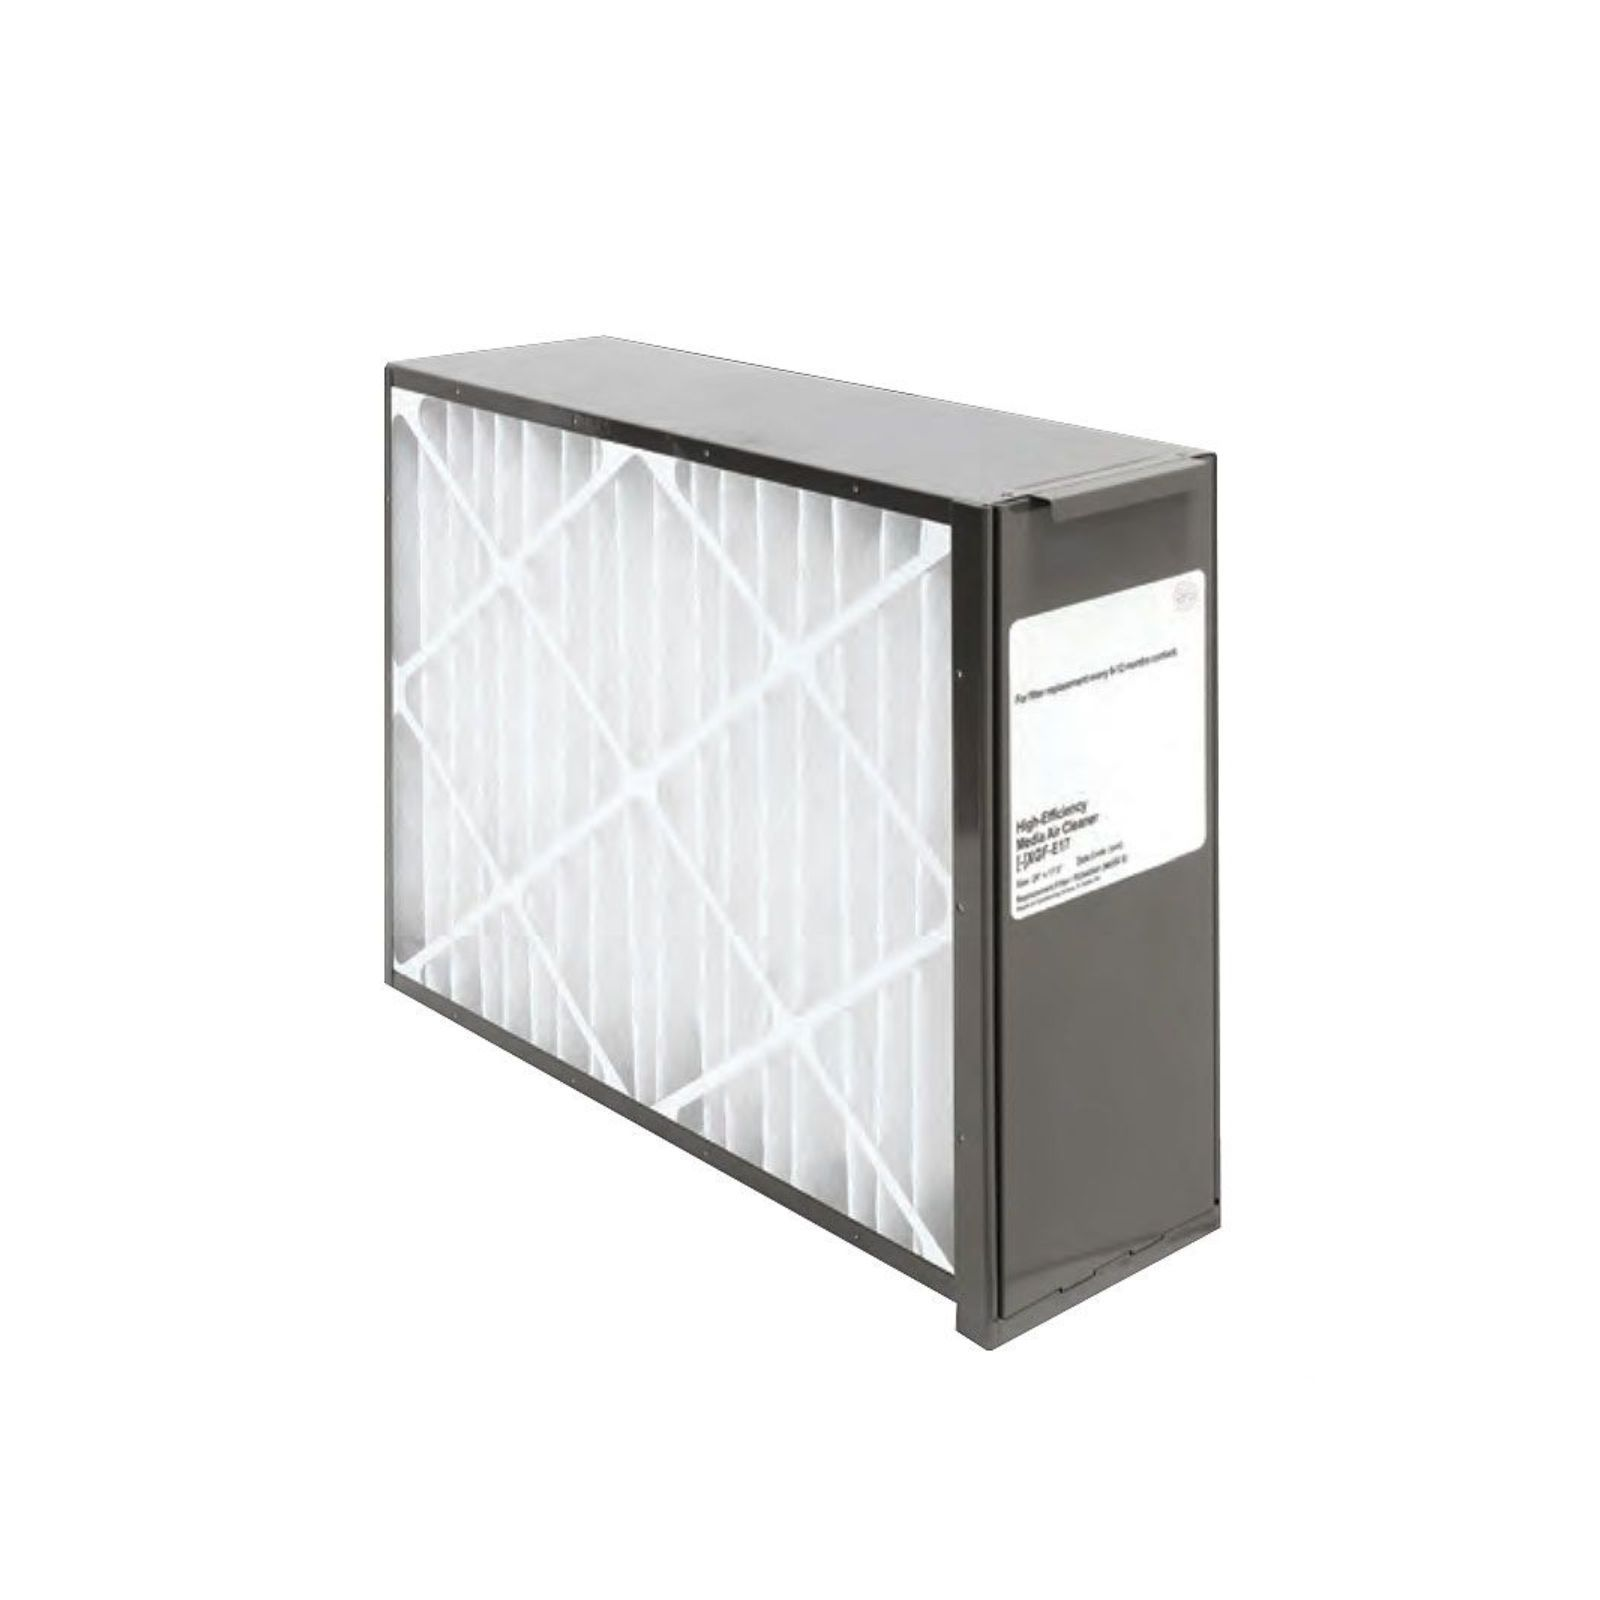 Rheem AXHF-E17AM - PROTECH Exact Fit Media Air Cleaners - Includes Merv 8 Filter Media - 17 1/2""